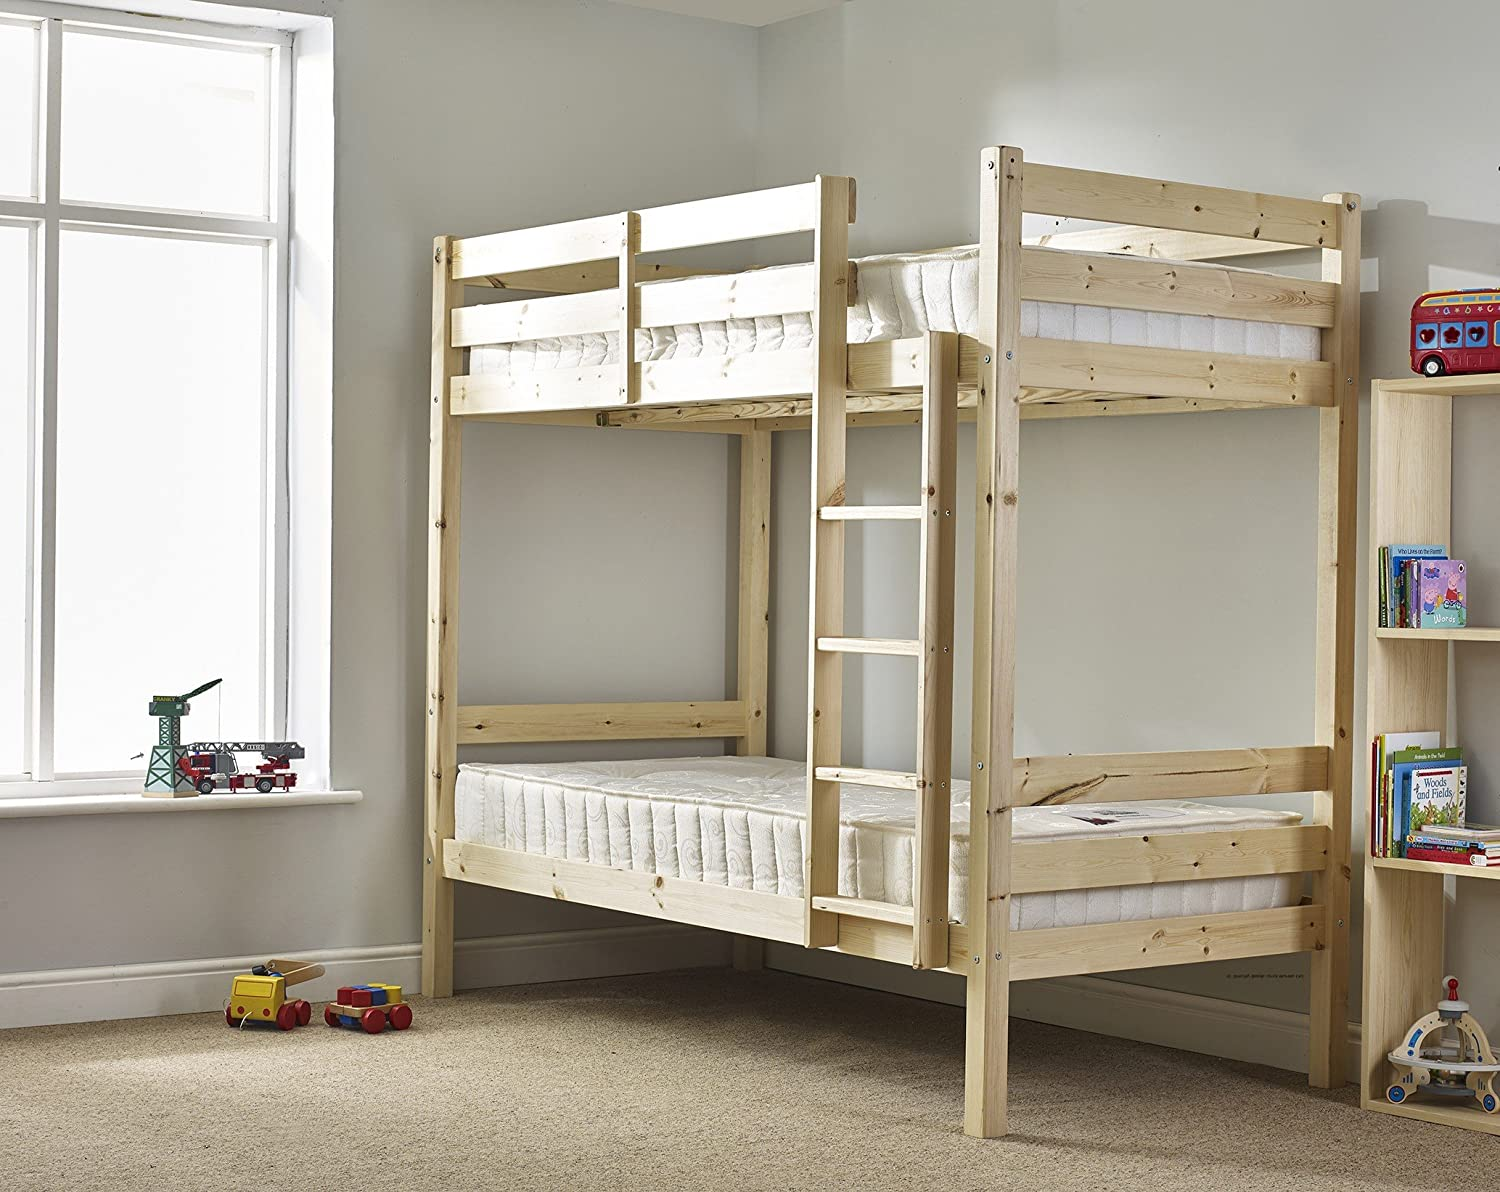 Adult Bunkbed - 3ft Single Bunk Bed - VERY STRONG BUNK! - Contract Use - has TWO centre rails for added support Strictly Beds and Bunks